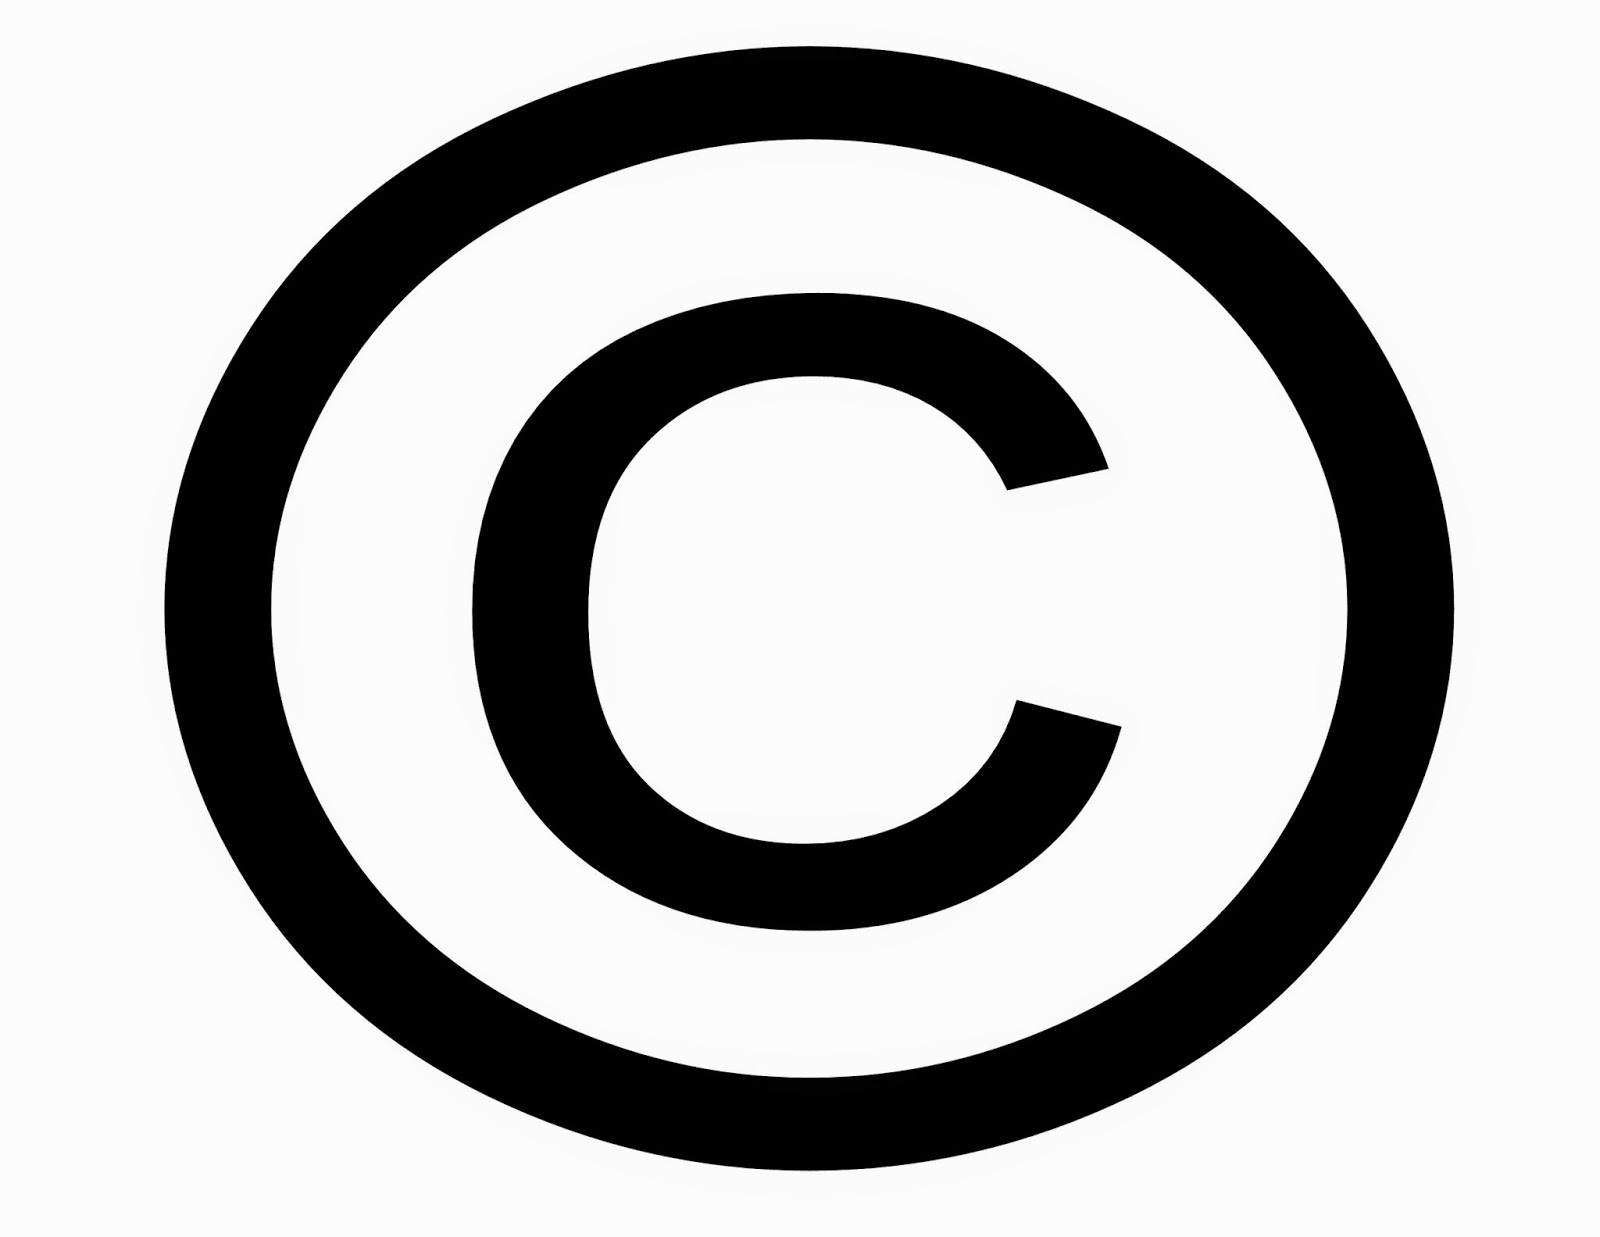 Judy rodman all things vocal blog how and when should you your songwriting is a form of intellectual property and as such it falls to you to protect it from theft there are different levels of protection you can biocorpaavc Choice Image